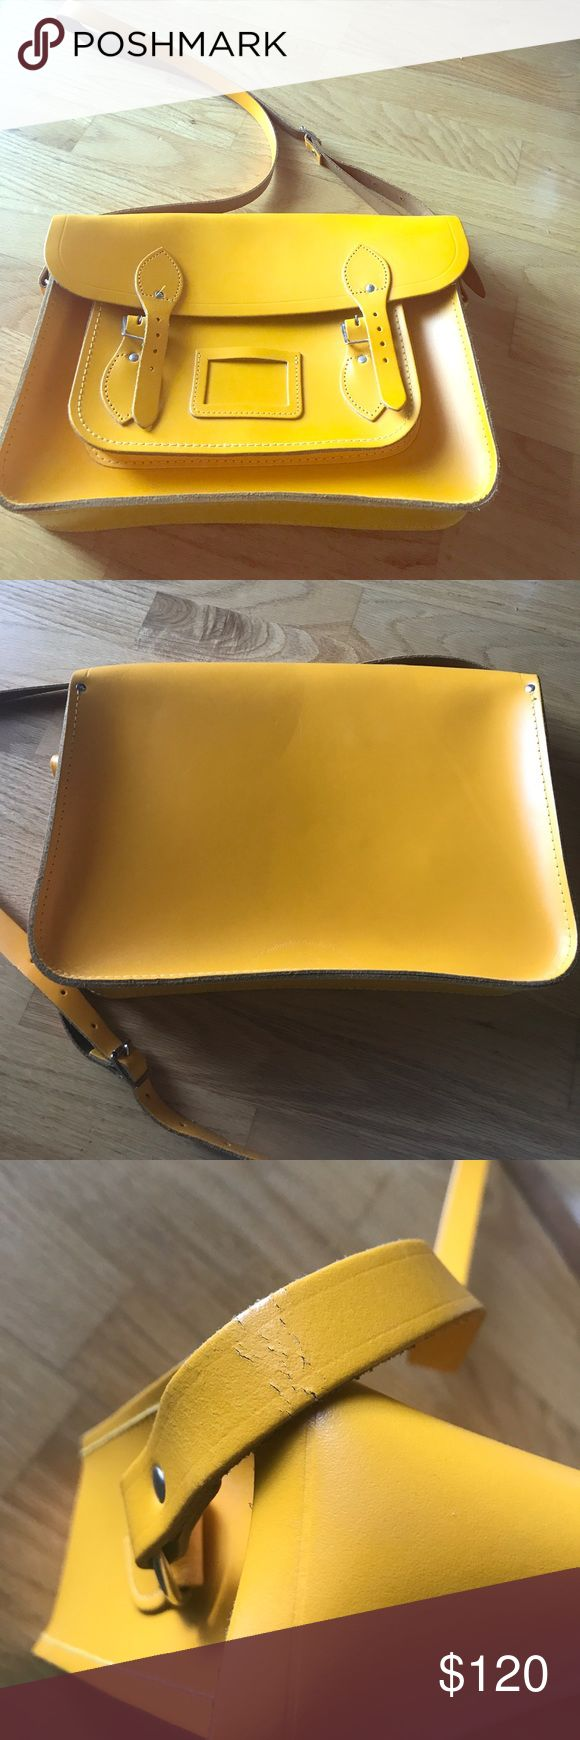 Cambridge Satchel Bag in yellow Good condition bag used only few time. The Cambridge satchel 14 inch in yellow. The Cambridge Satchel Company Bags Satchels